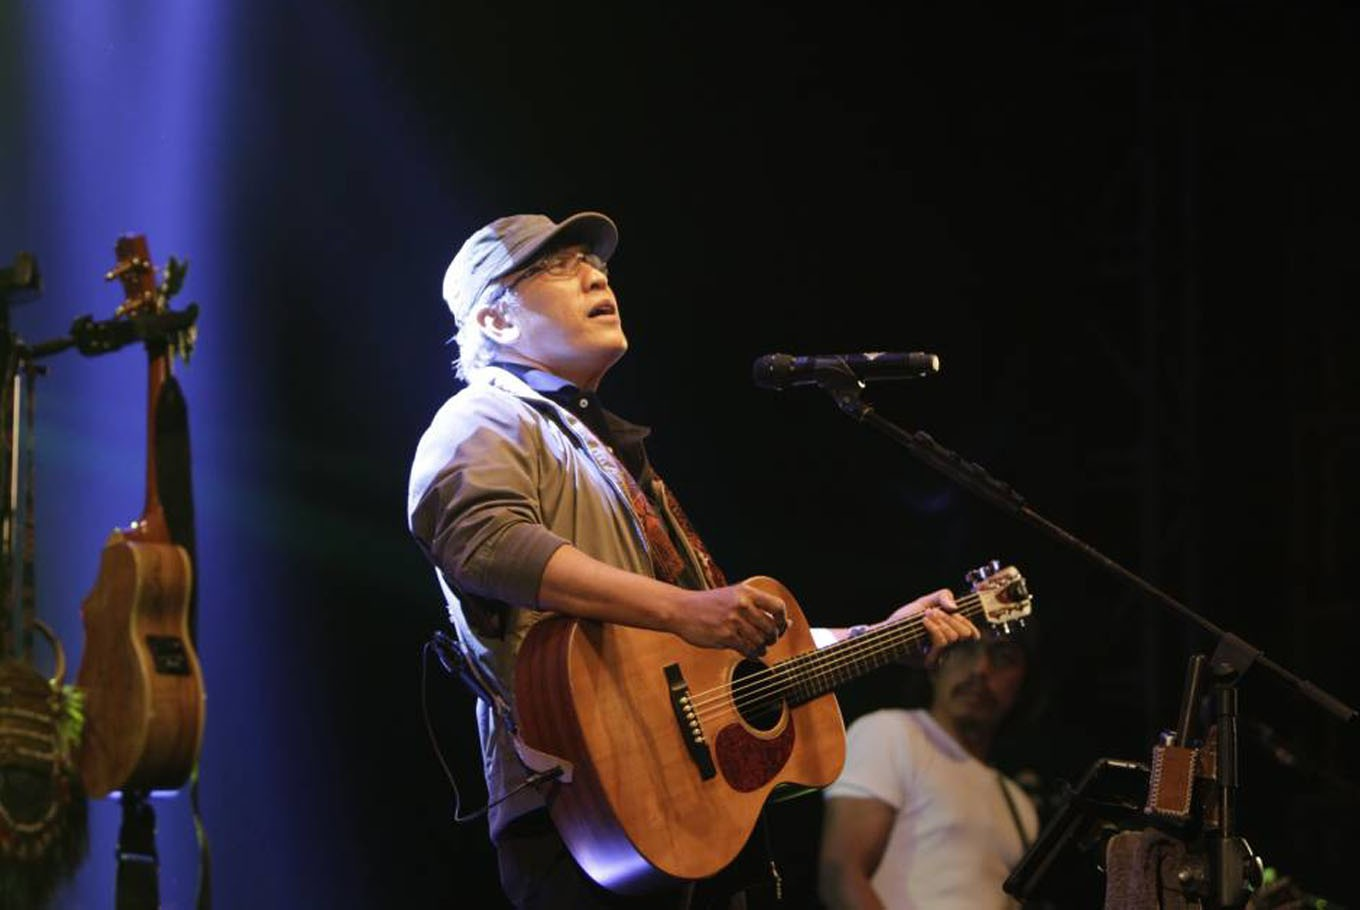 Novel inspired by Iwan Fals' songs marks legend's 45th anniversary in music